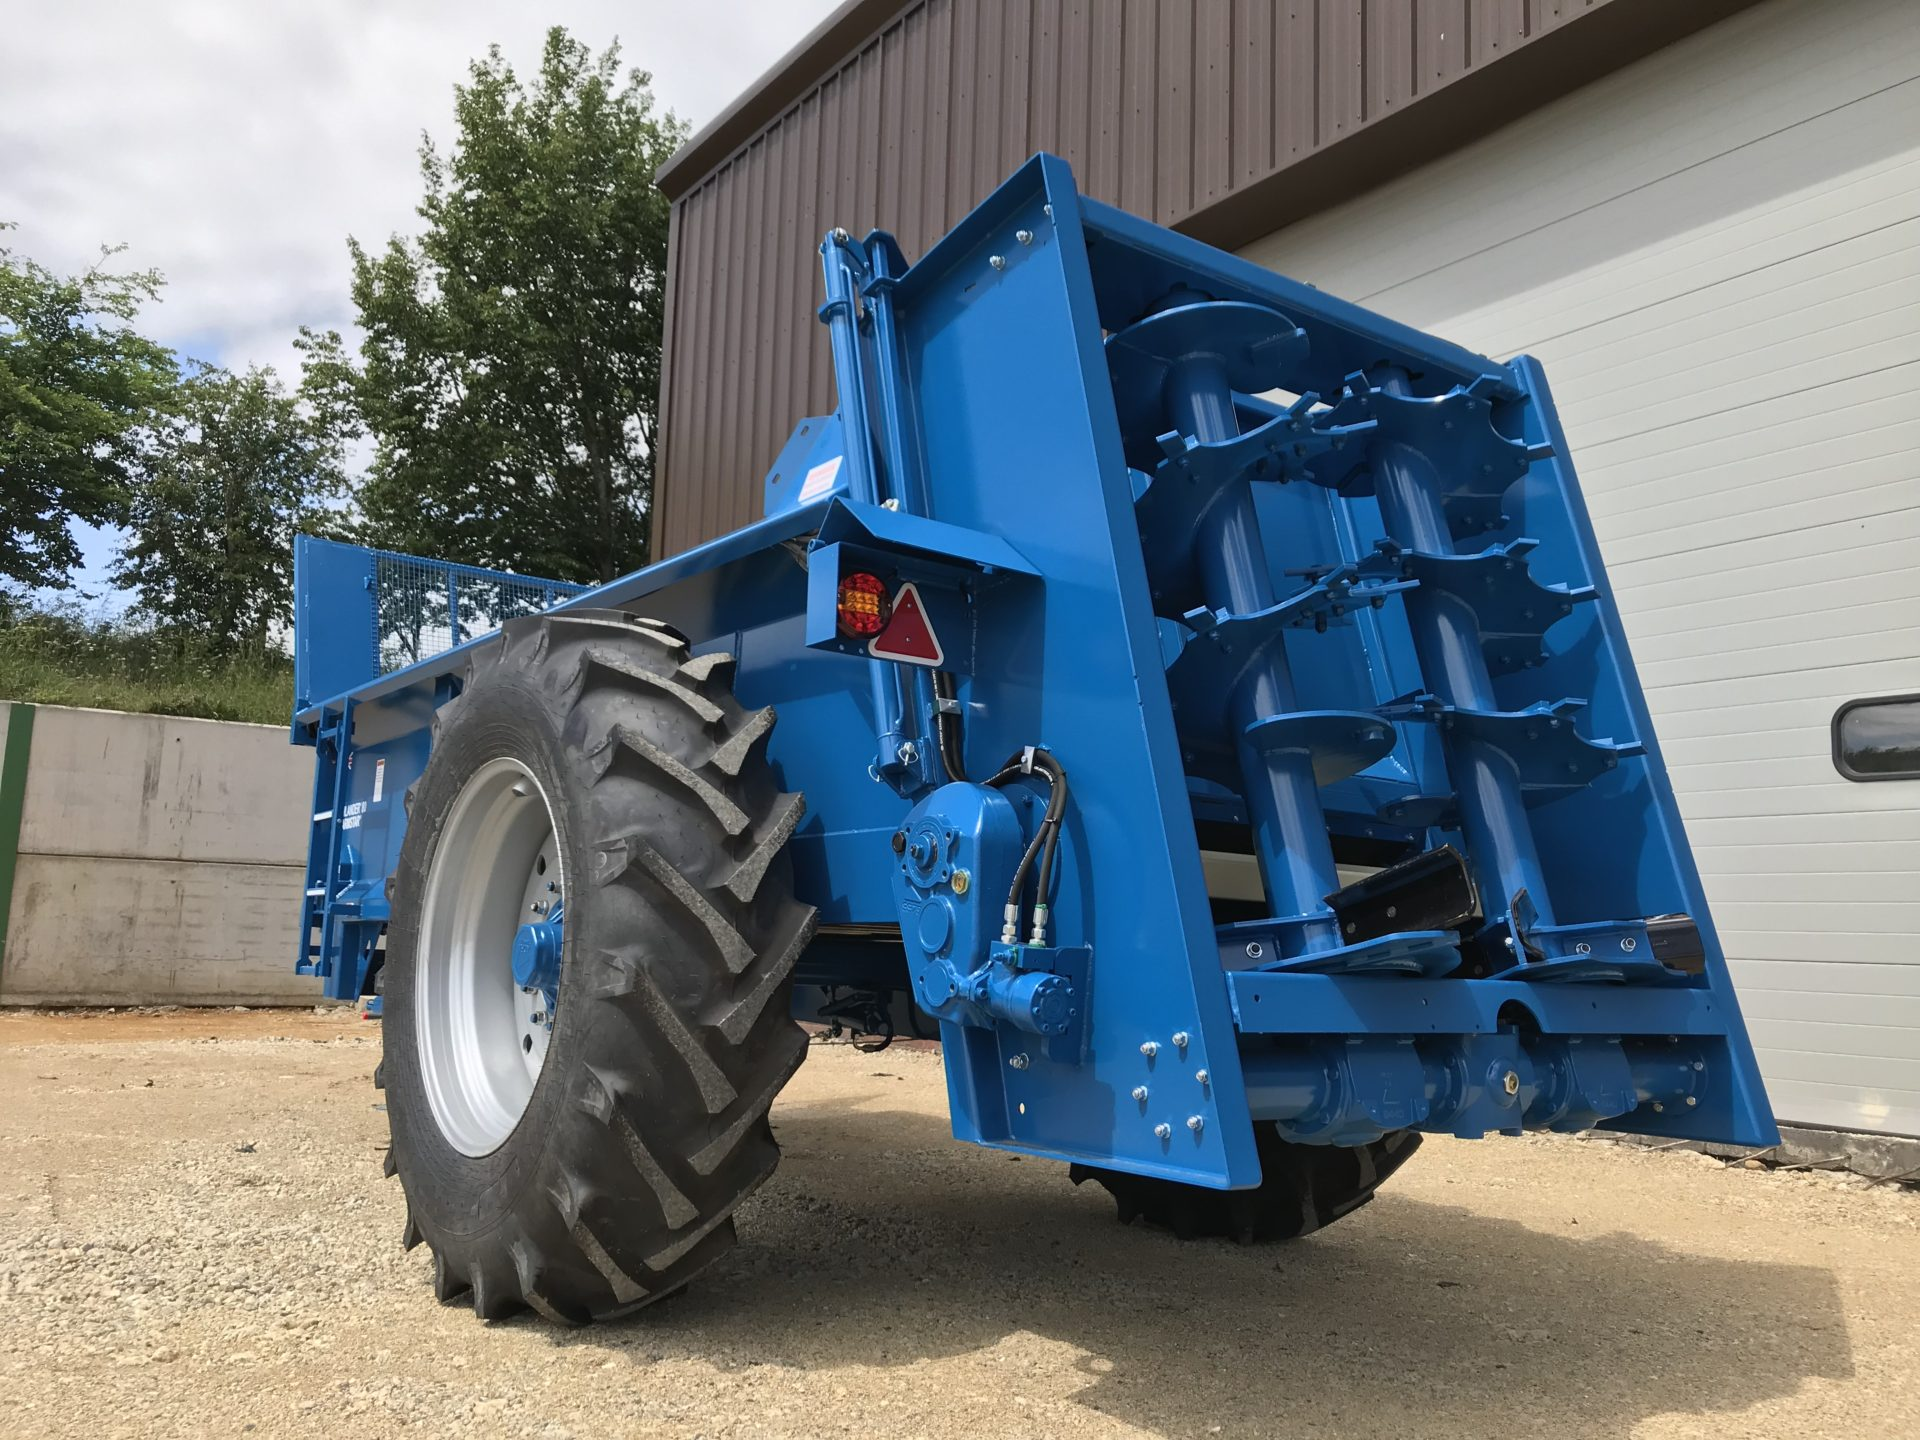 Farmstar 80 TVA with slurry door and 18.4-34 wheels